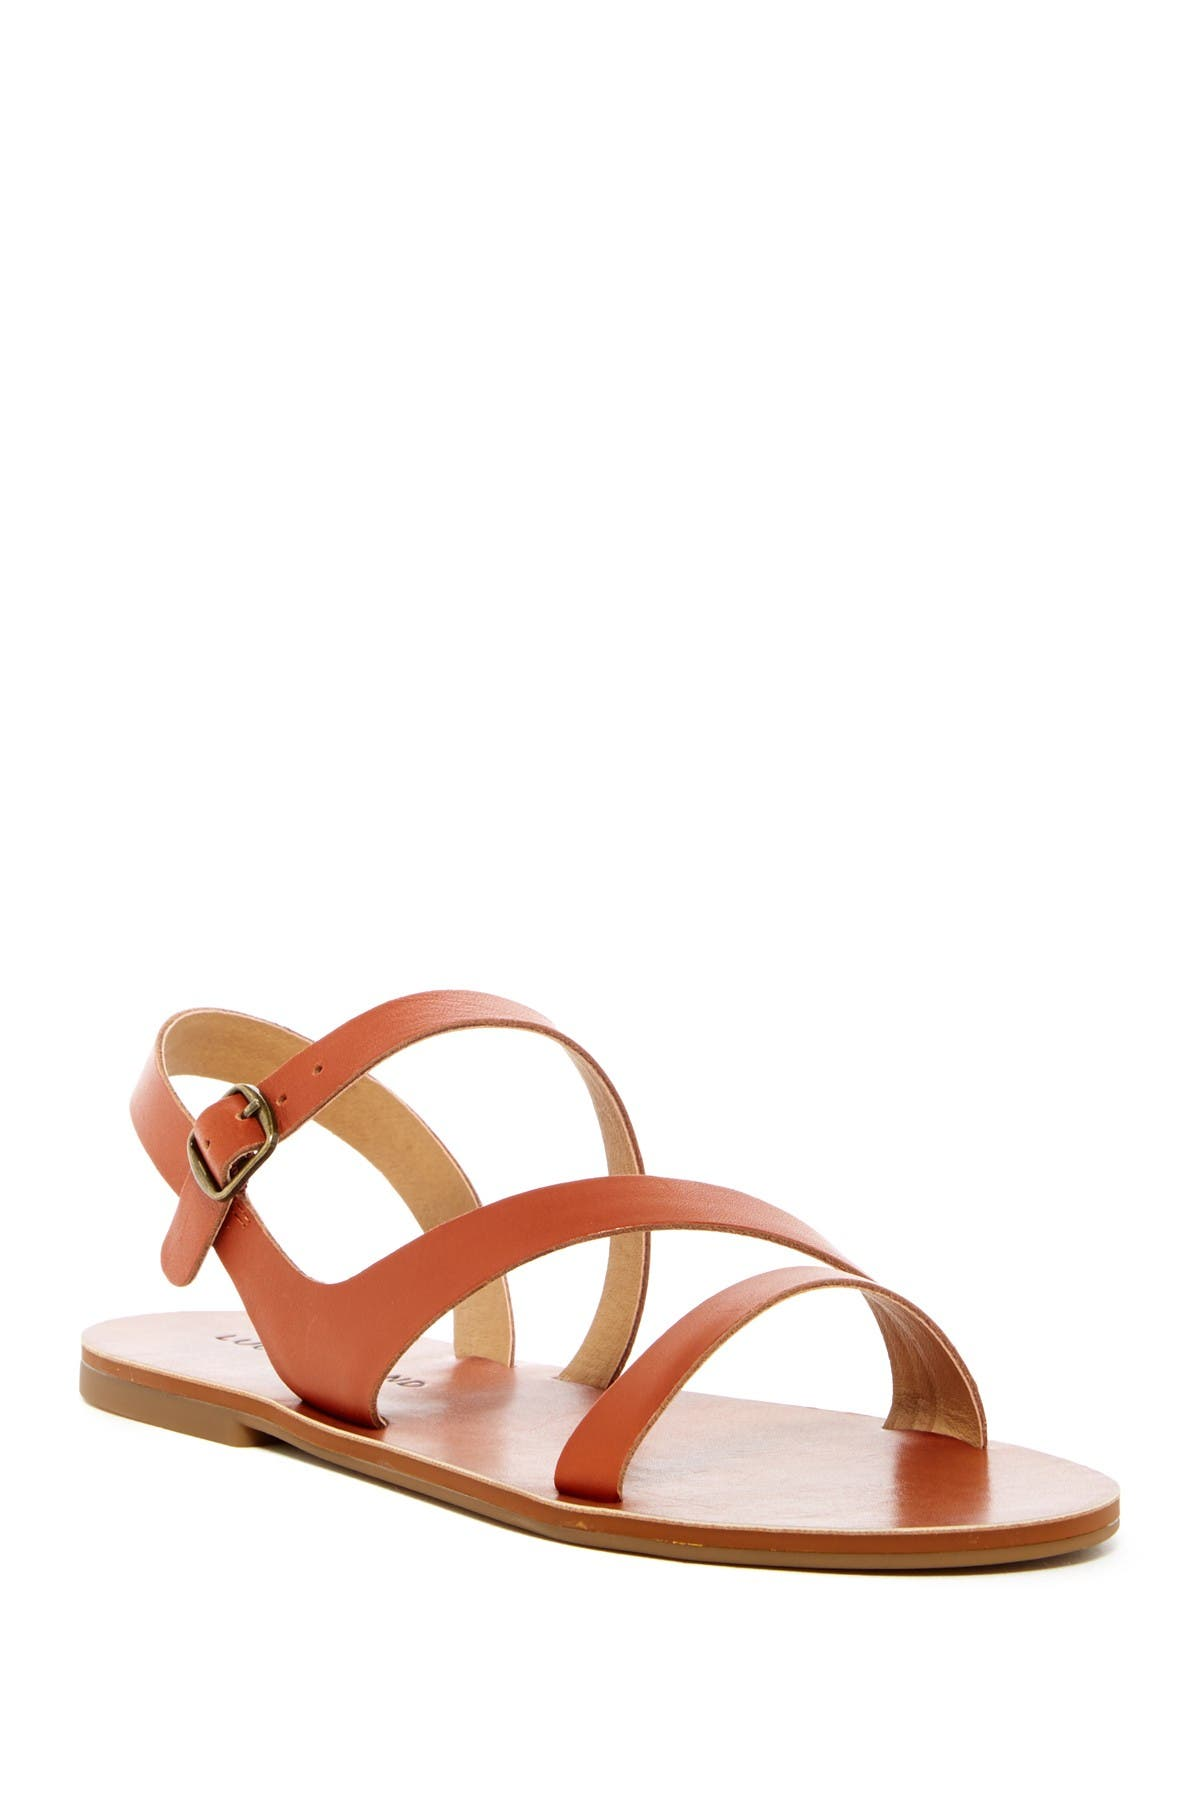 Image of Lucky Brand Alexcia Sandal